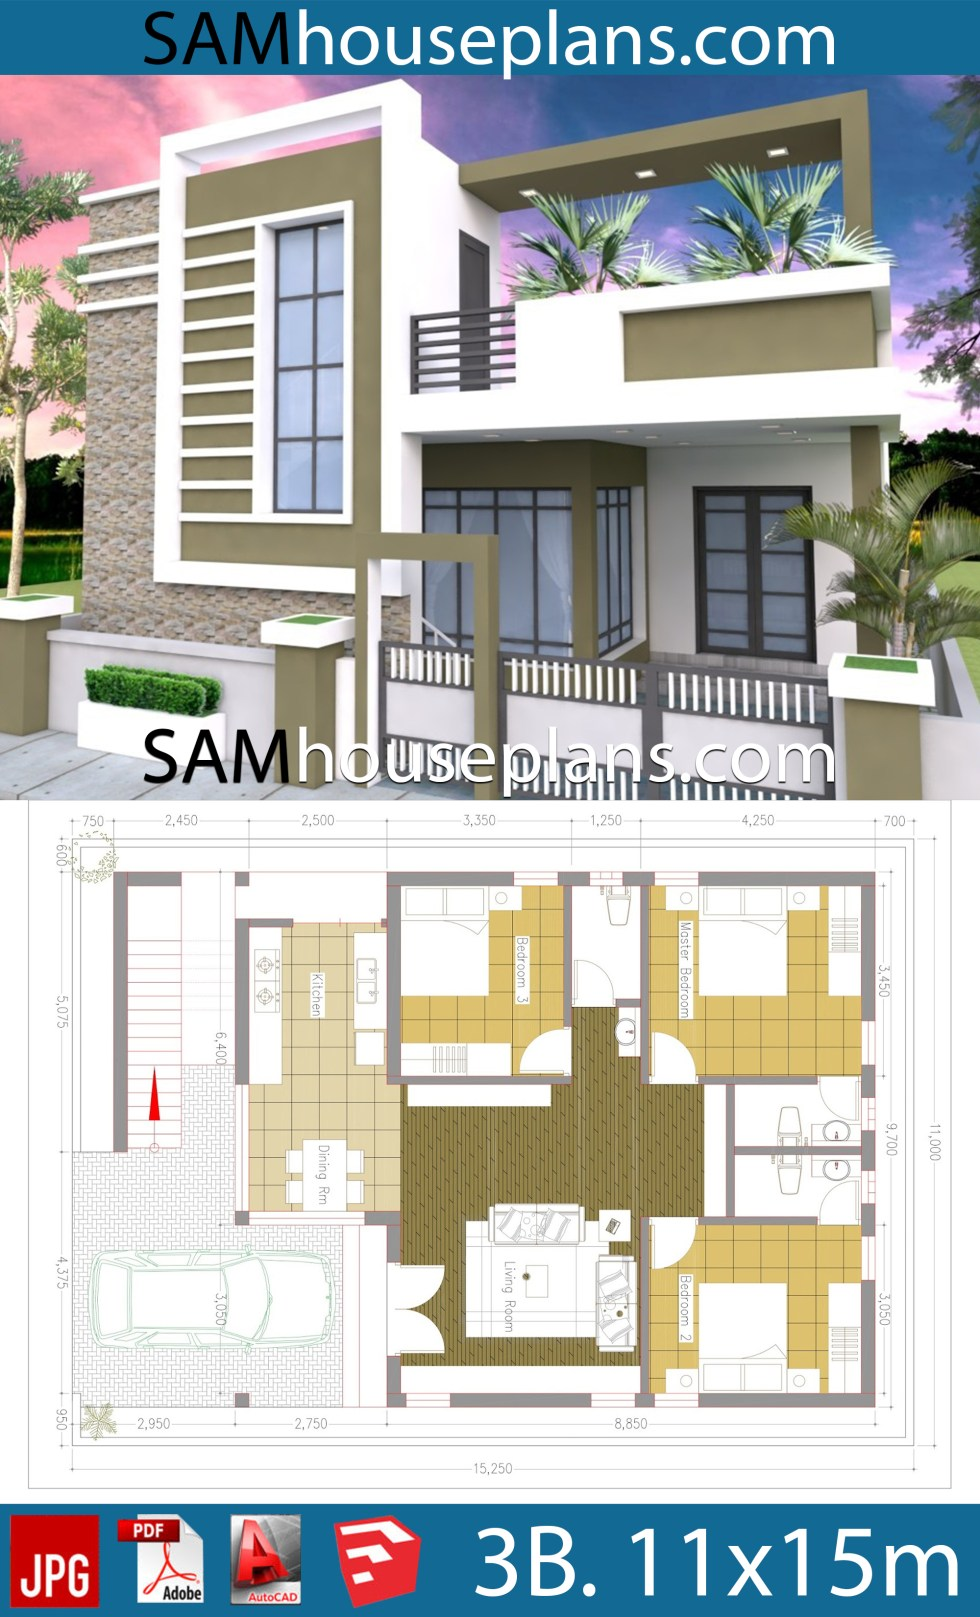 House Plans 11x15 with 3 Bedrooms